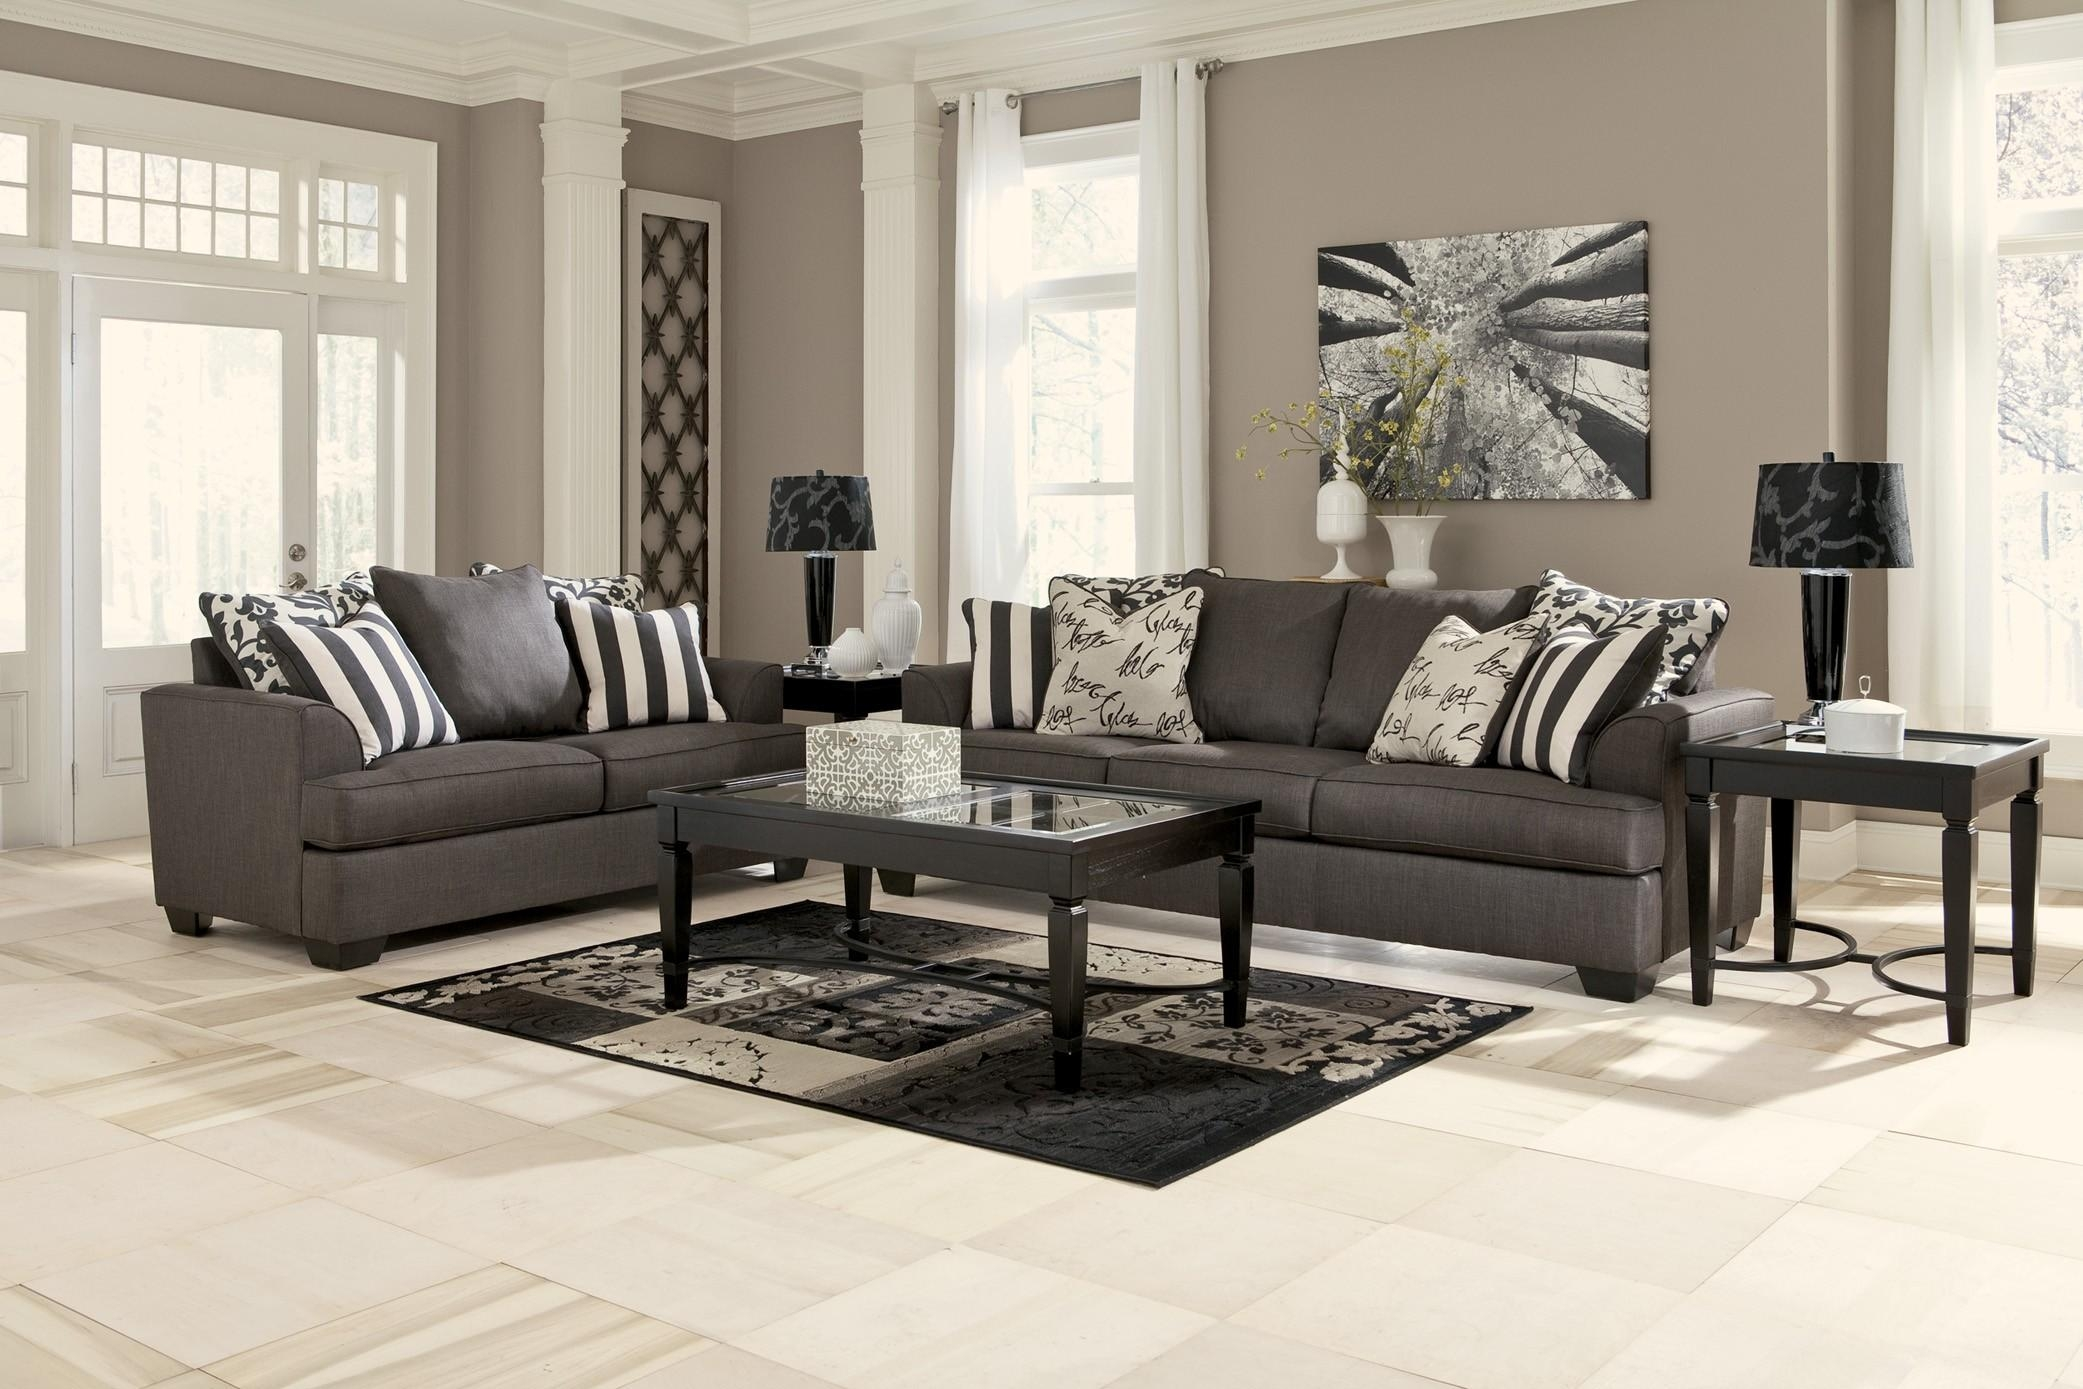 Charcoal Grey Sofa Living Room | Tehranmix Decoration Inside Charcoal Grey Sofas (View 4 of 20)